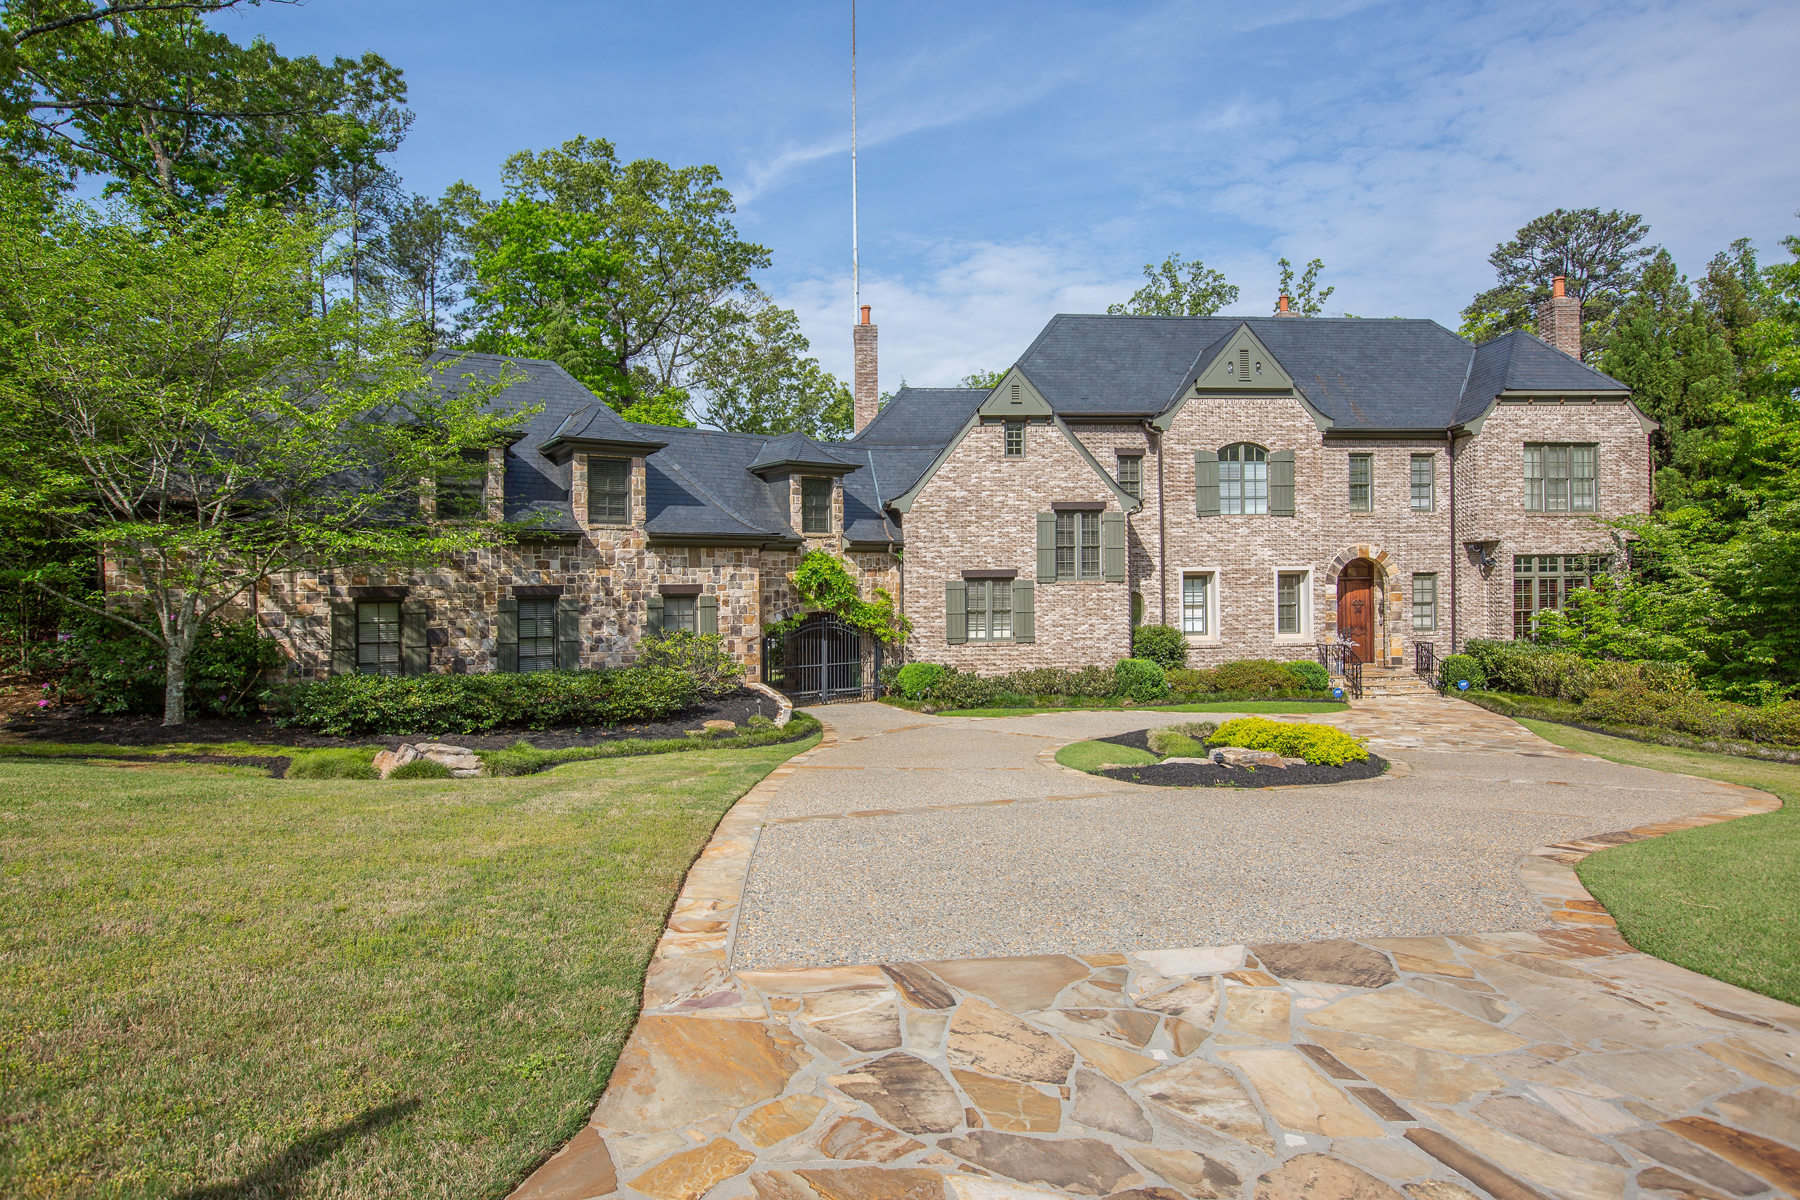 Villa per Vendita alle ore Gated Brick And Stone Home 4240 Irma Court Buckhead, Atlanta, Georgia, 30327 Stati Uniti